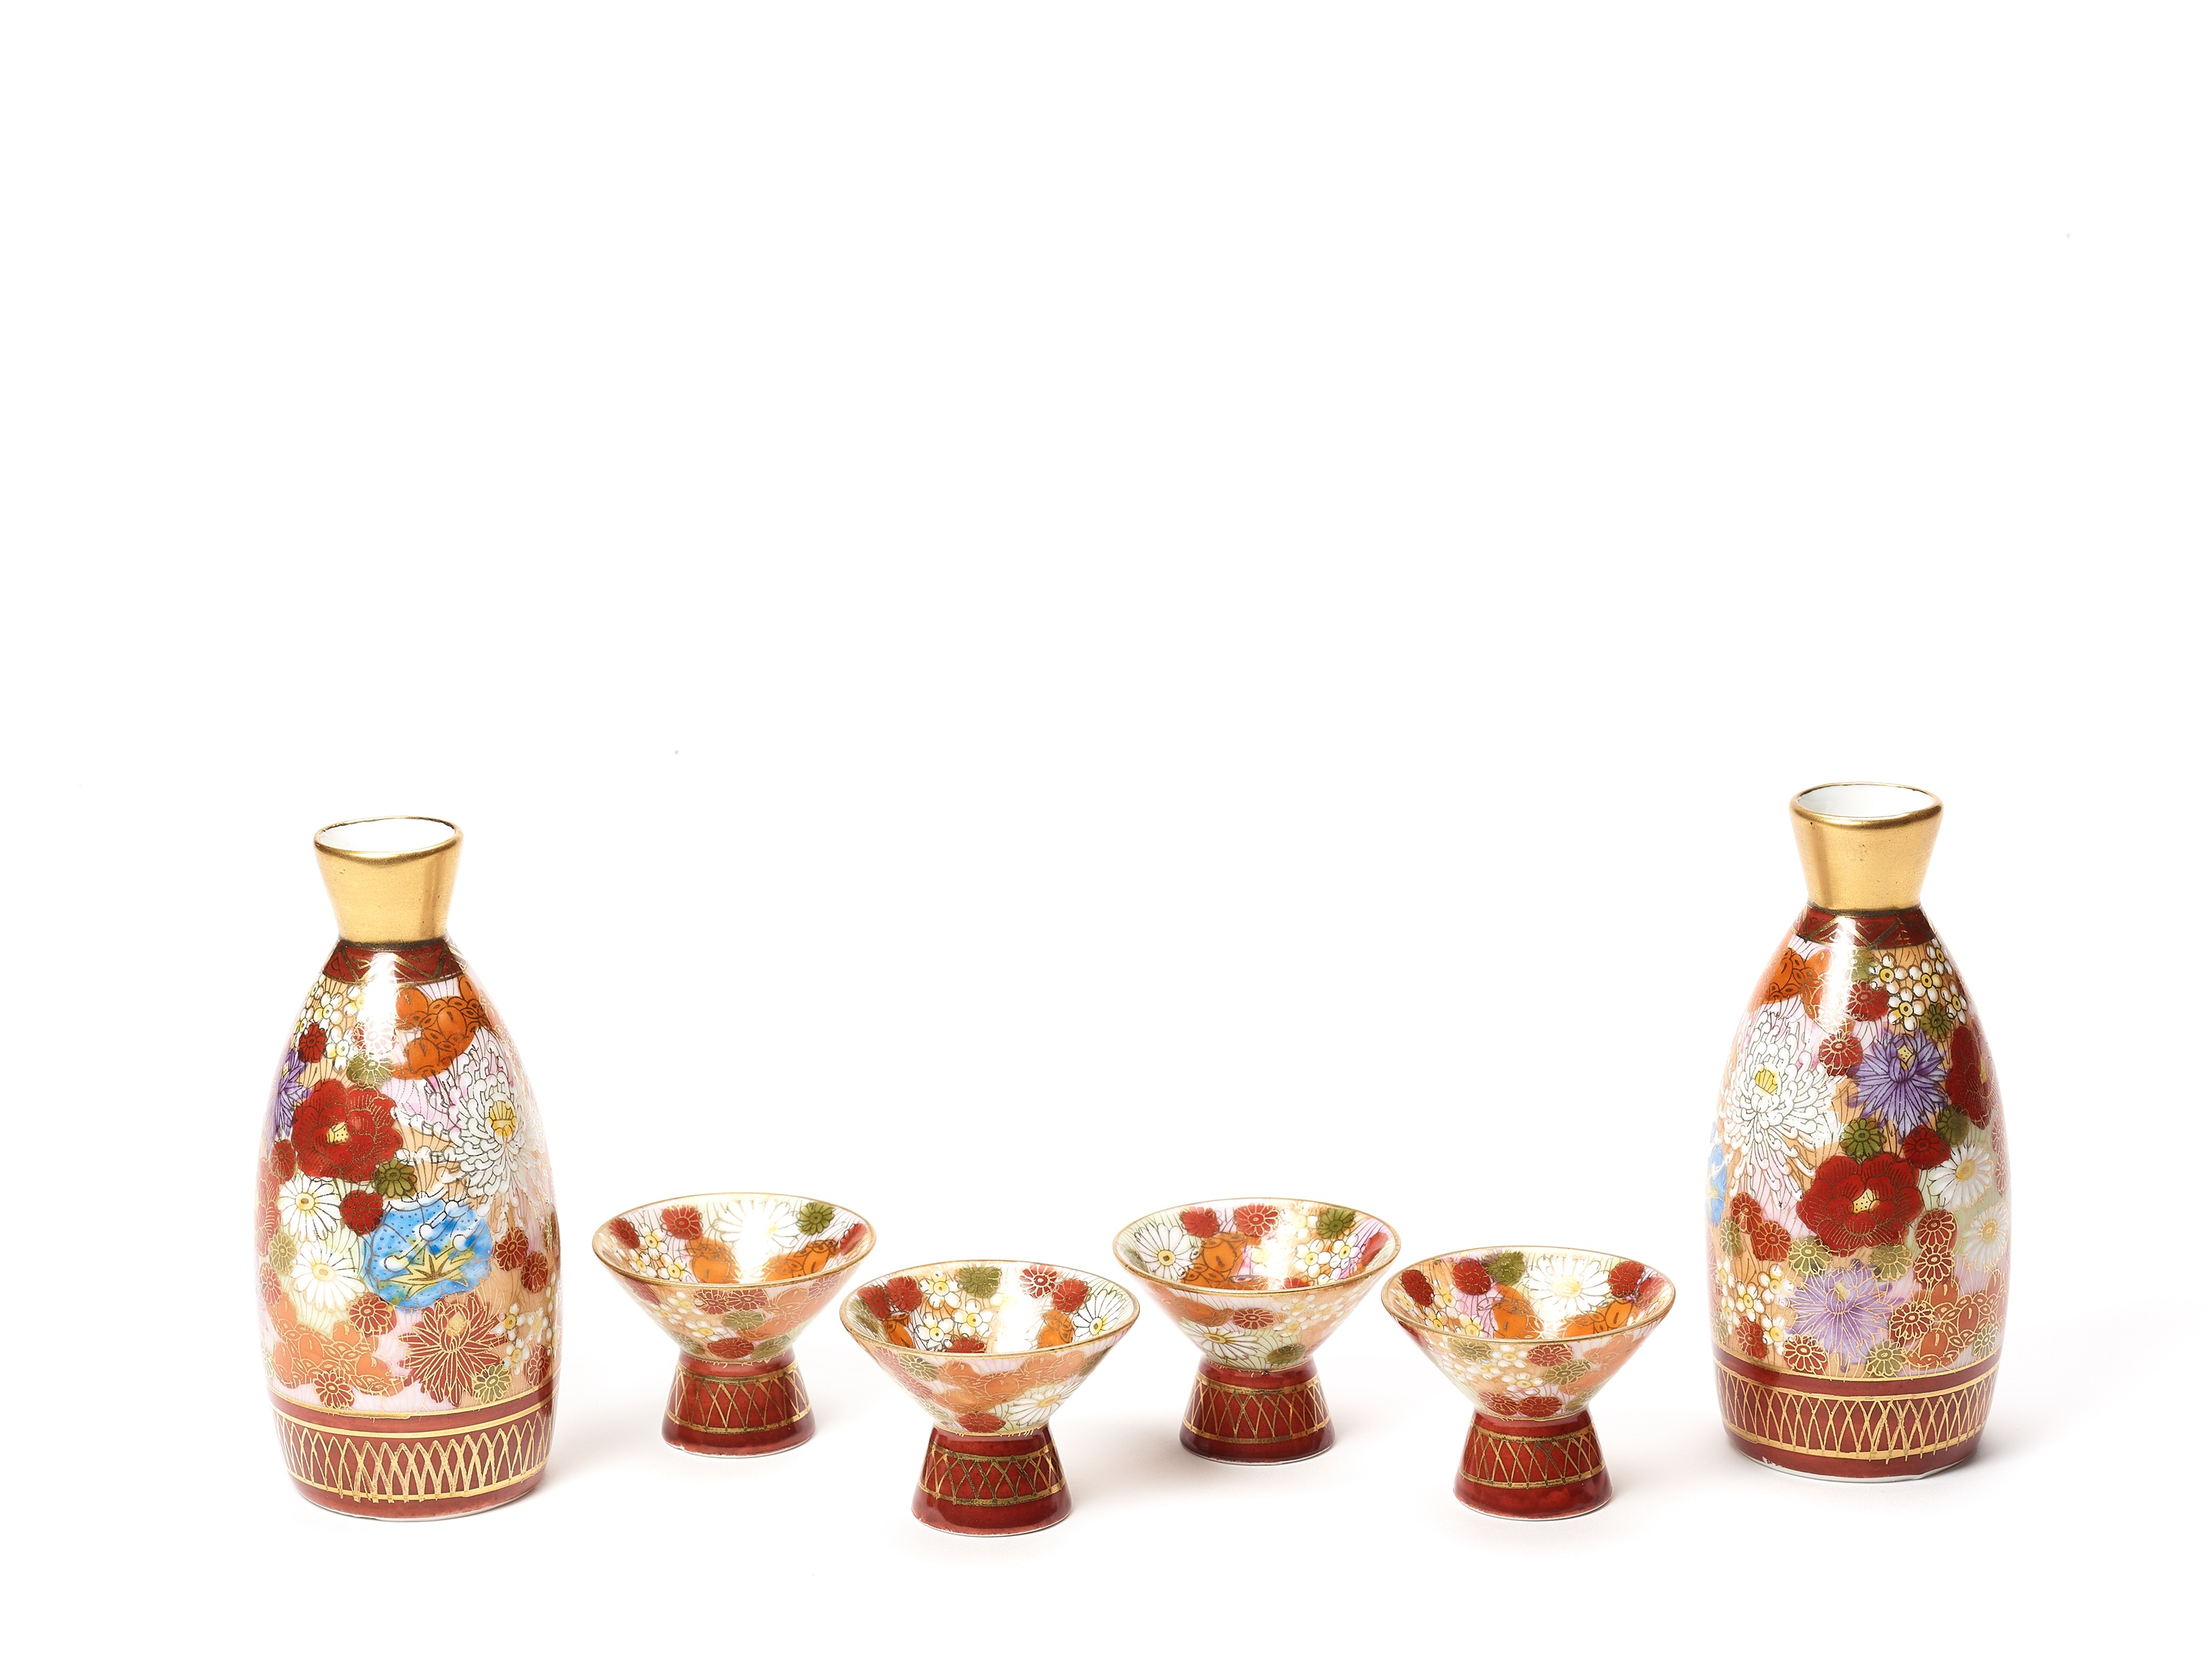 TWO SMALL VASES, SIGNED SHUSAN, AND FOUR SAKE CUPS WITH FLORAL DECORATIONS